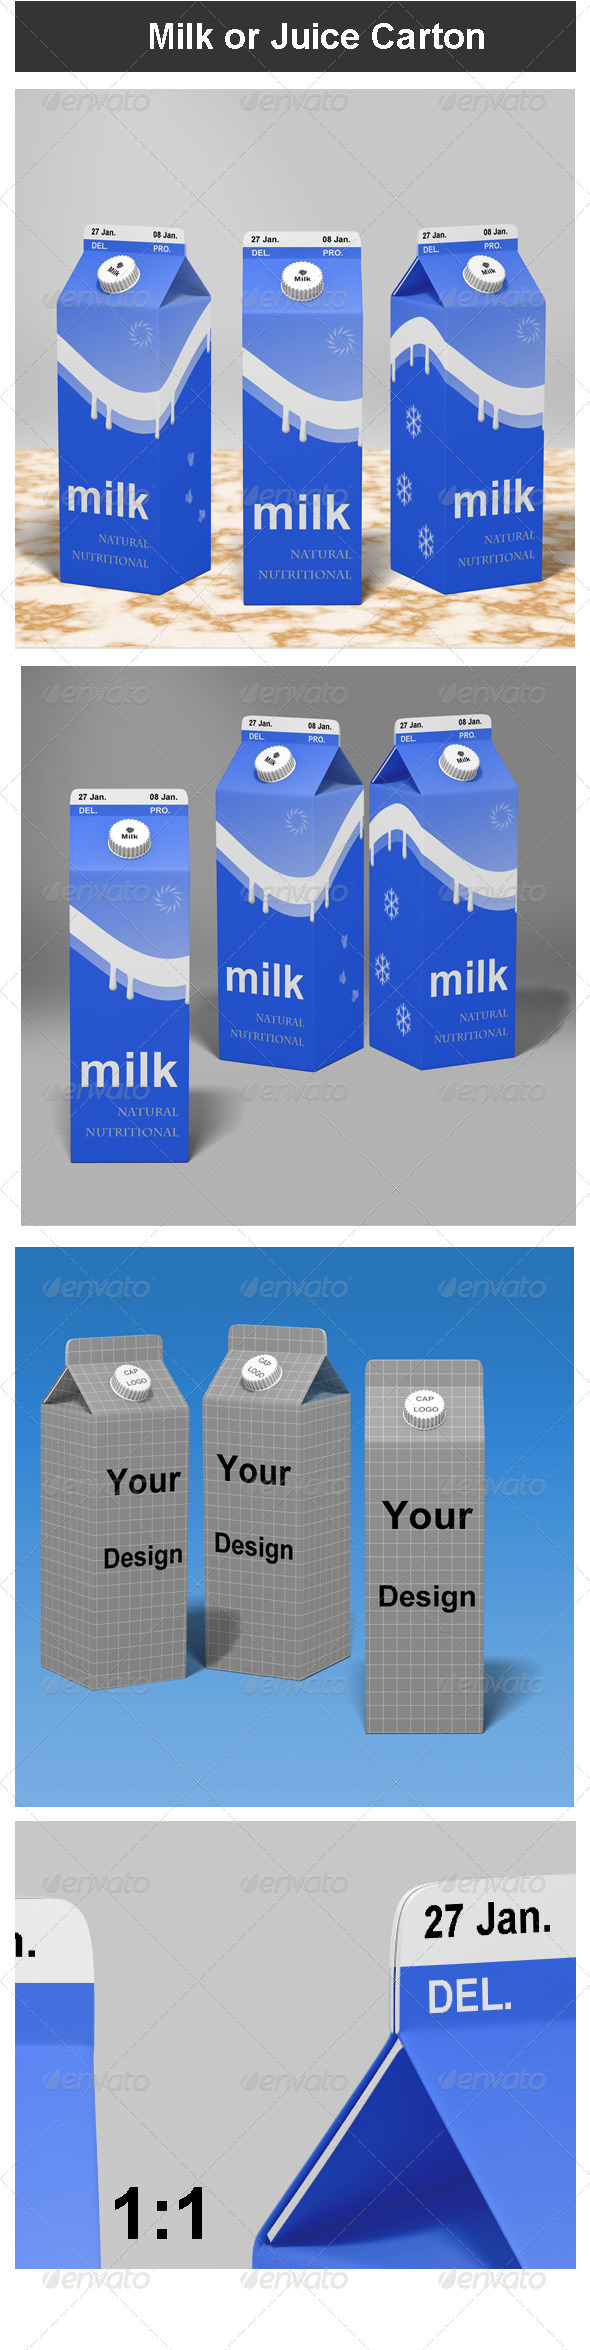 GraphicRiver Milk or Juice Carton Mock-up 3710485